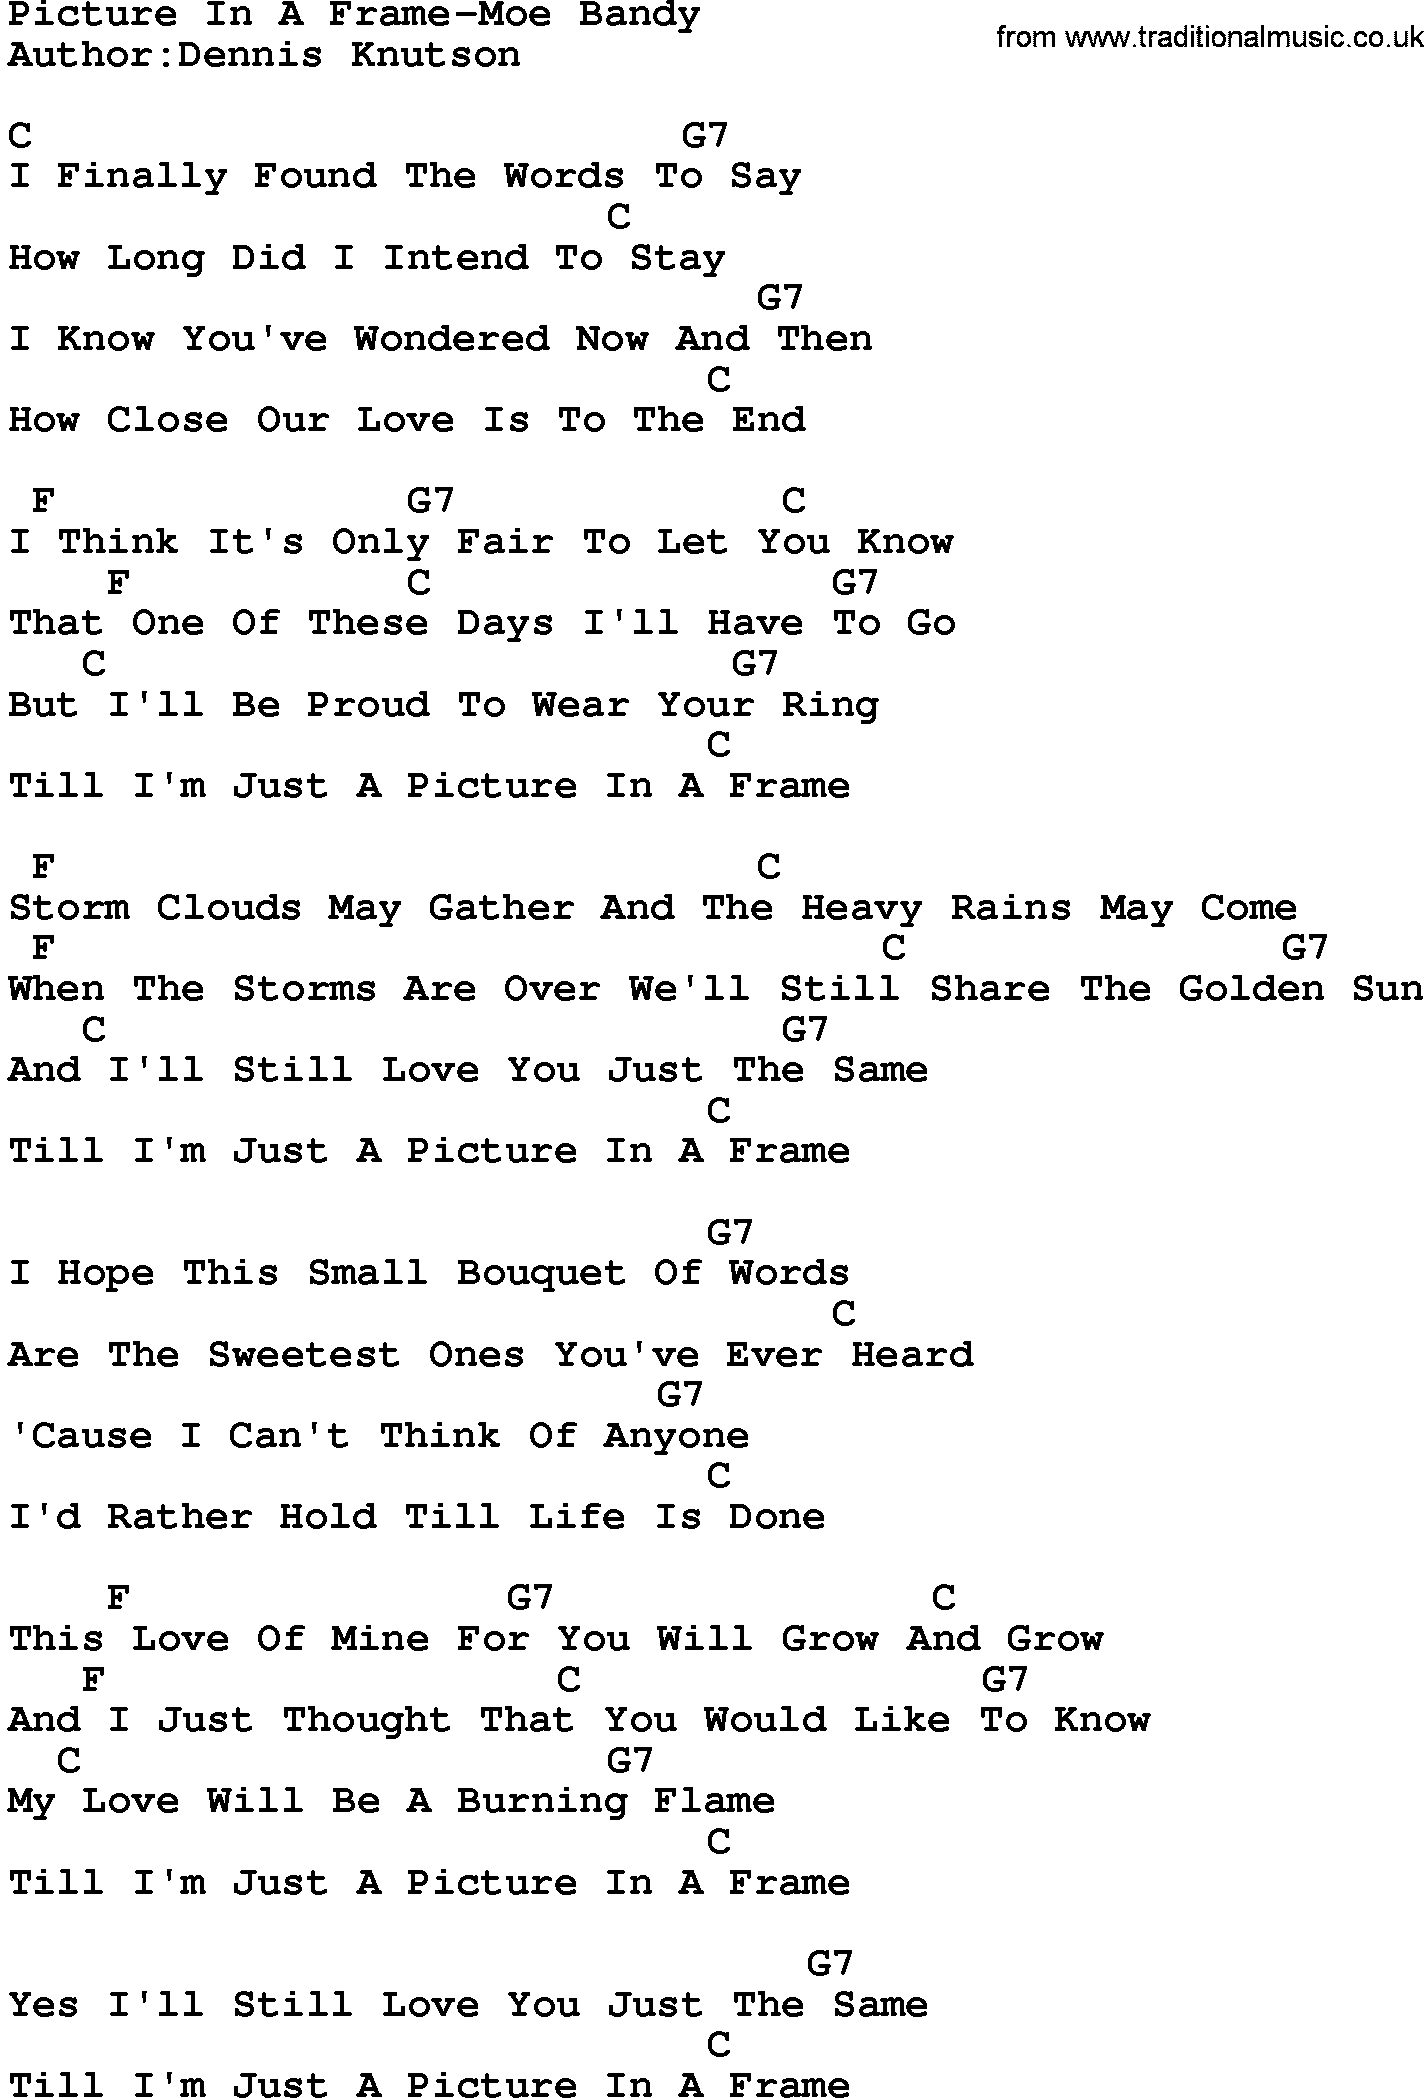 Country Music:Picture In A Frame-Moe Bandy Lyrics and Chords